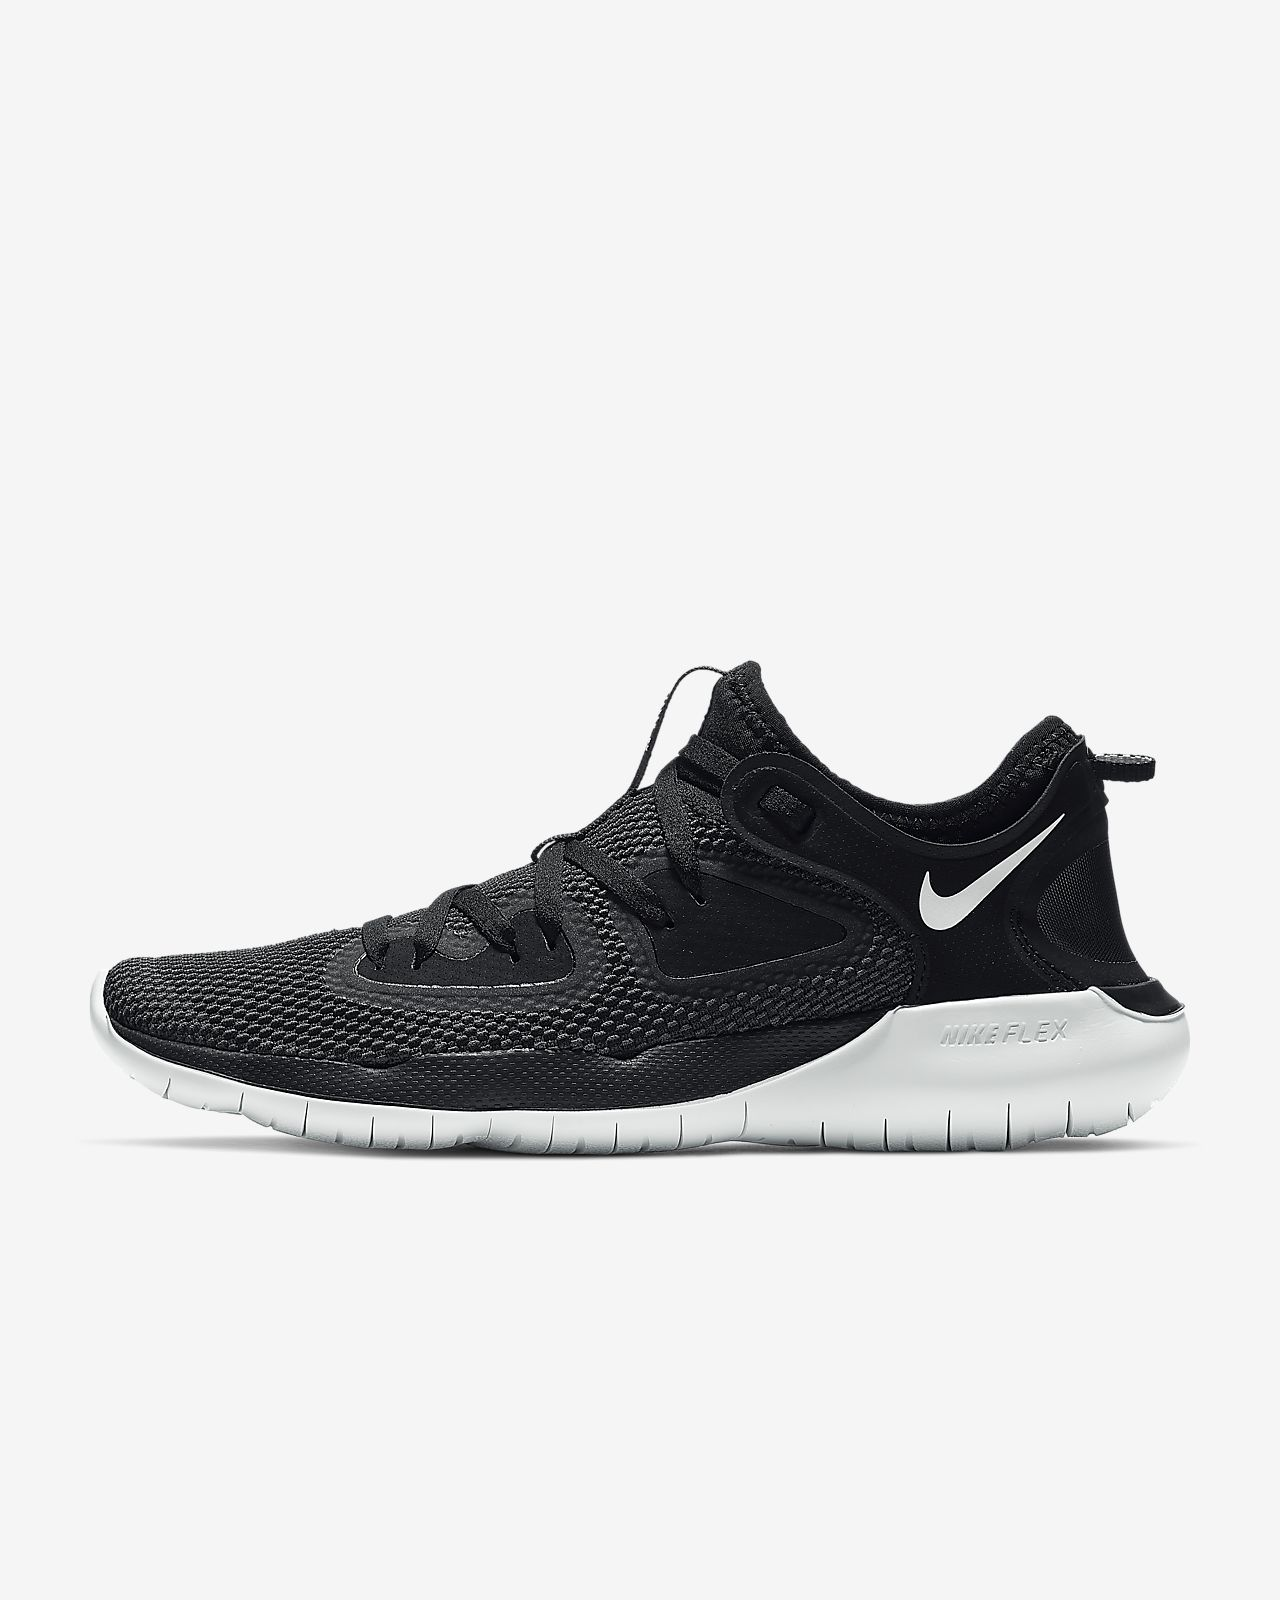 Nike Free Rn Flyknit 2020 Review.Nike Flex Rn 2019 Women S Running Shoe